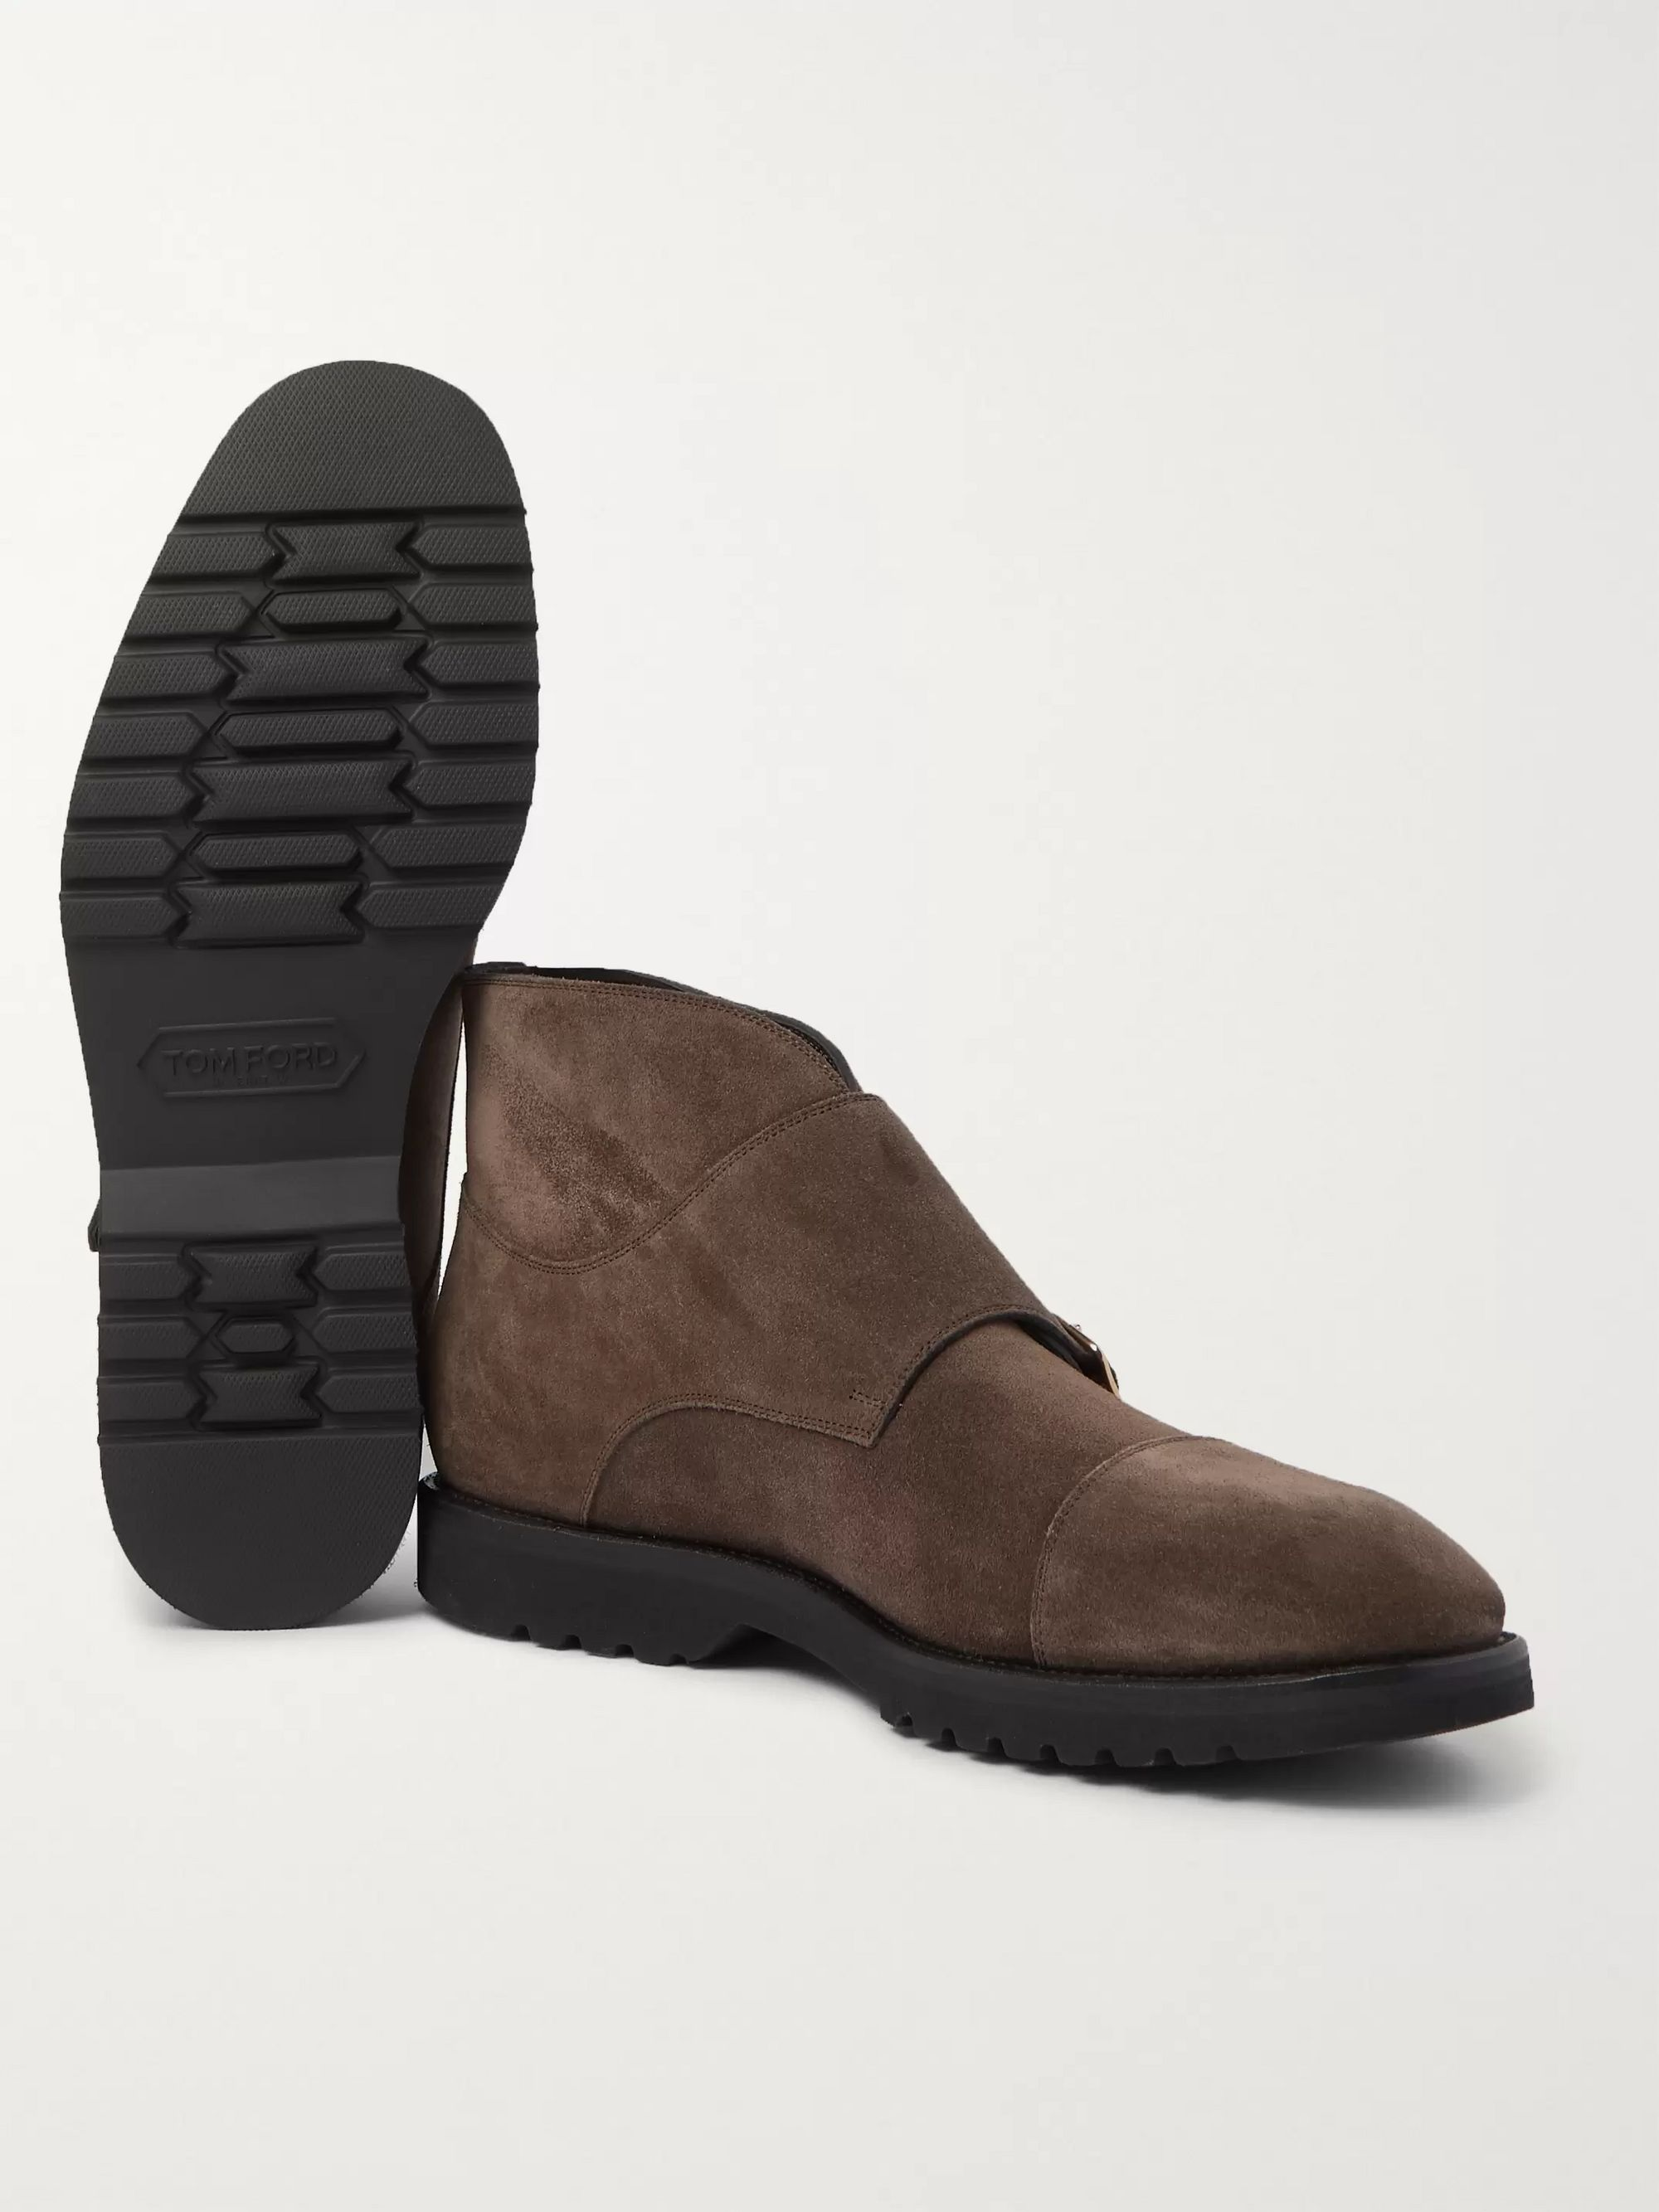 TOM FORD Kensington Suede Monk-Strap Boots